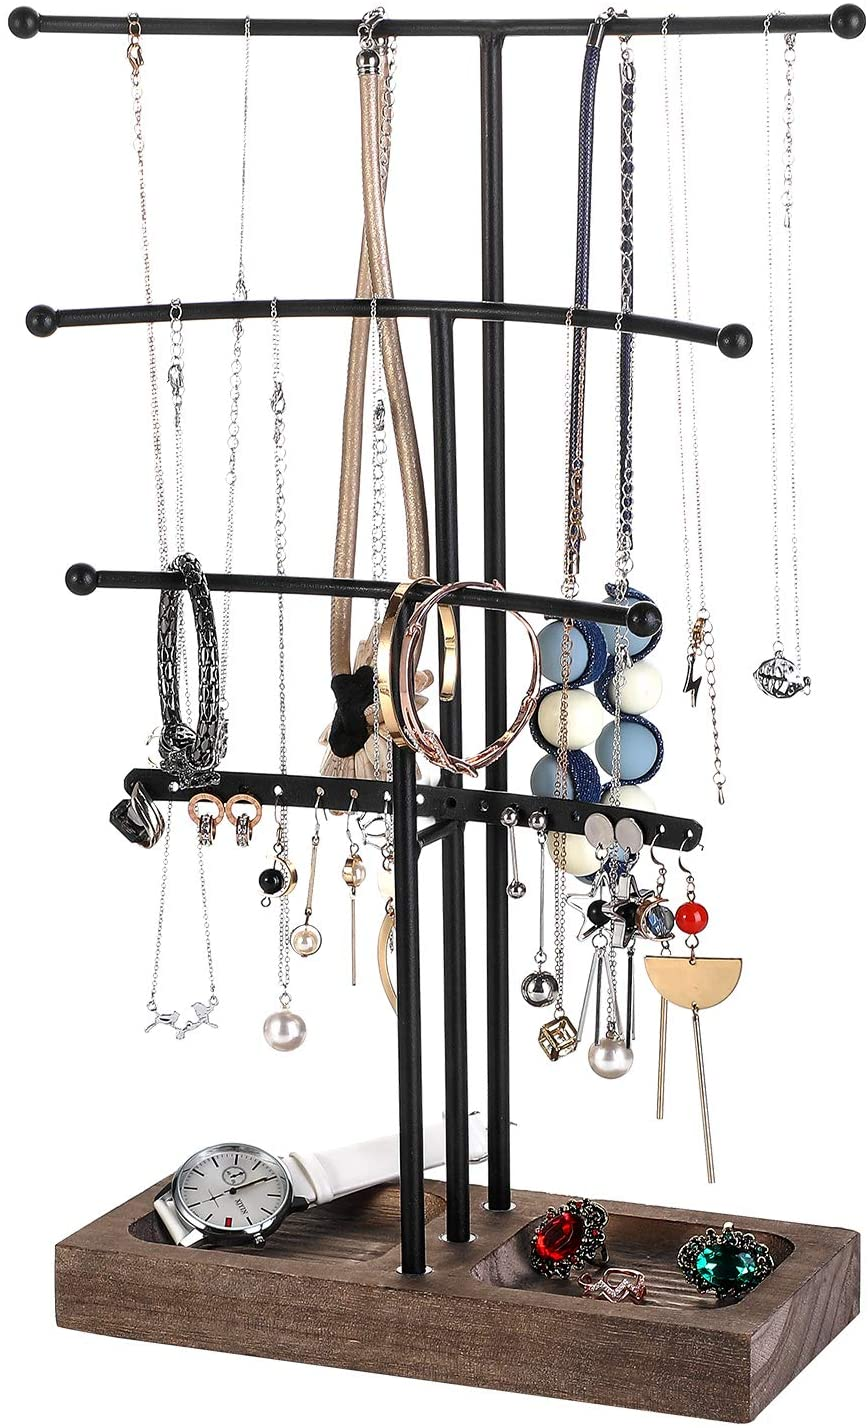 Urban Deco Arc Jewelry Holder— 4 Tier Jewelry Organizer Stand With Black Wood and Brown Tray For Girls And Women To Organize Necklace, Earrings, Bracelet, Ring, Watch And Hair Tie.